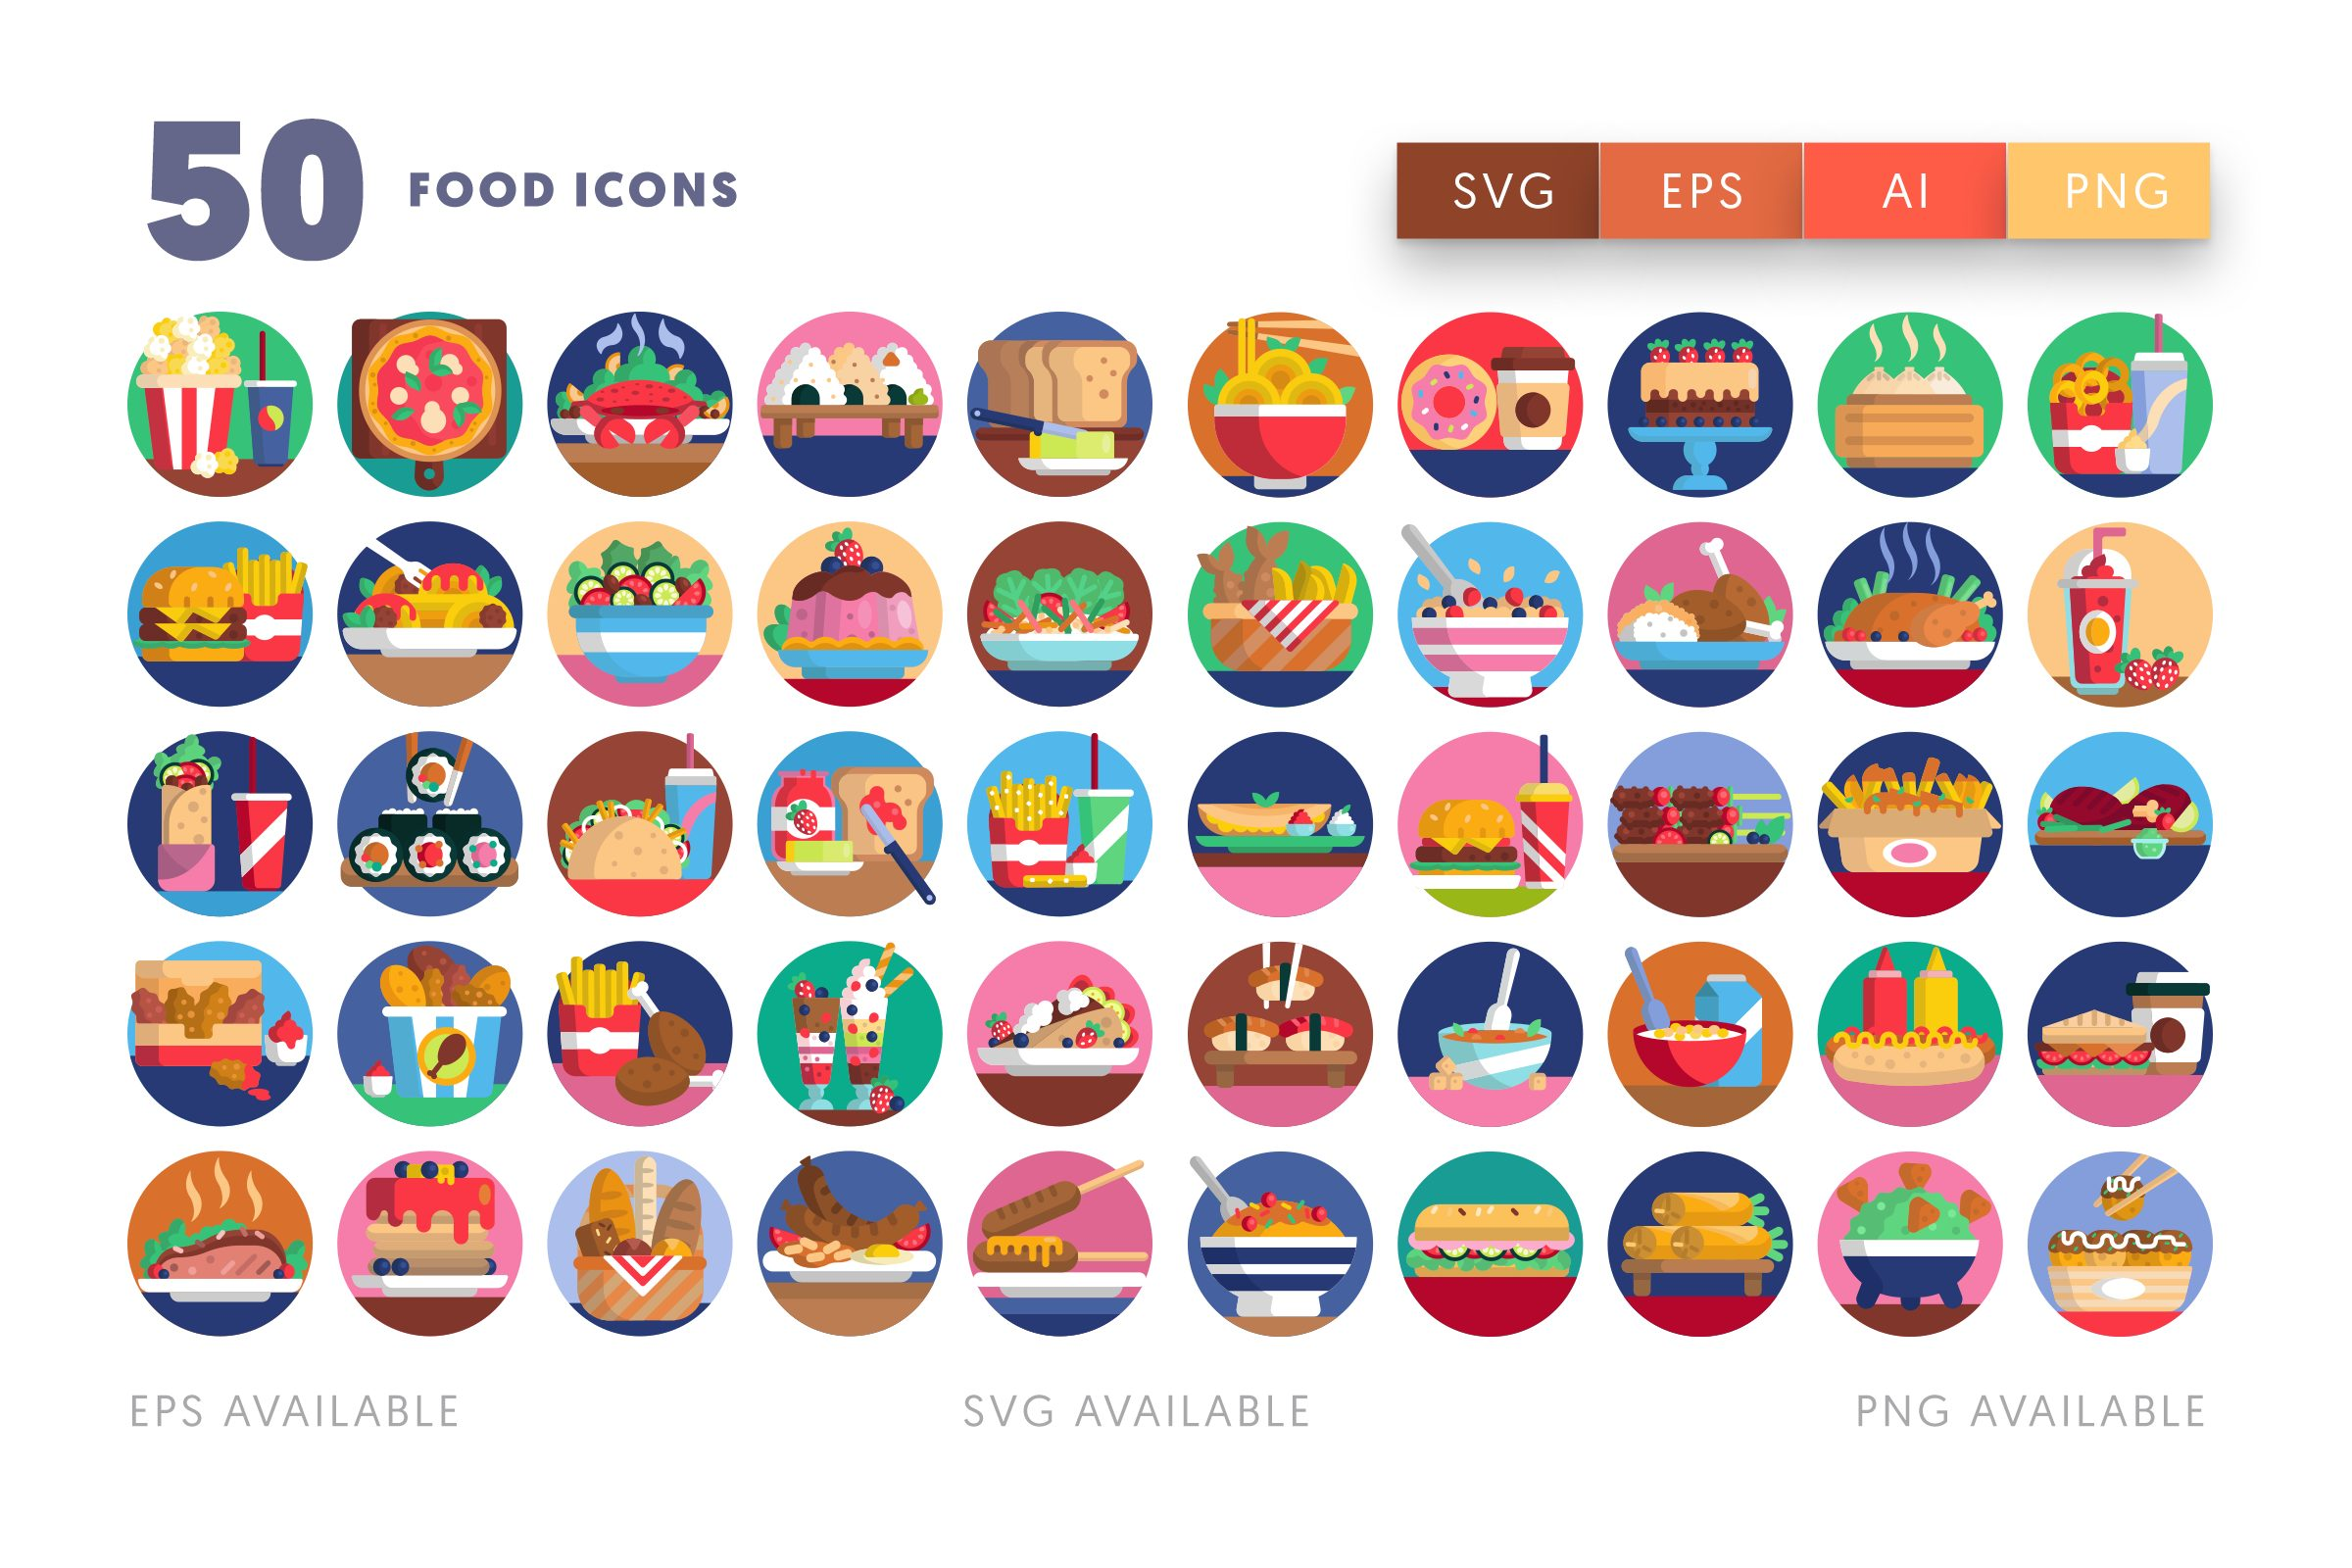 Food icons png/svg/eps